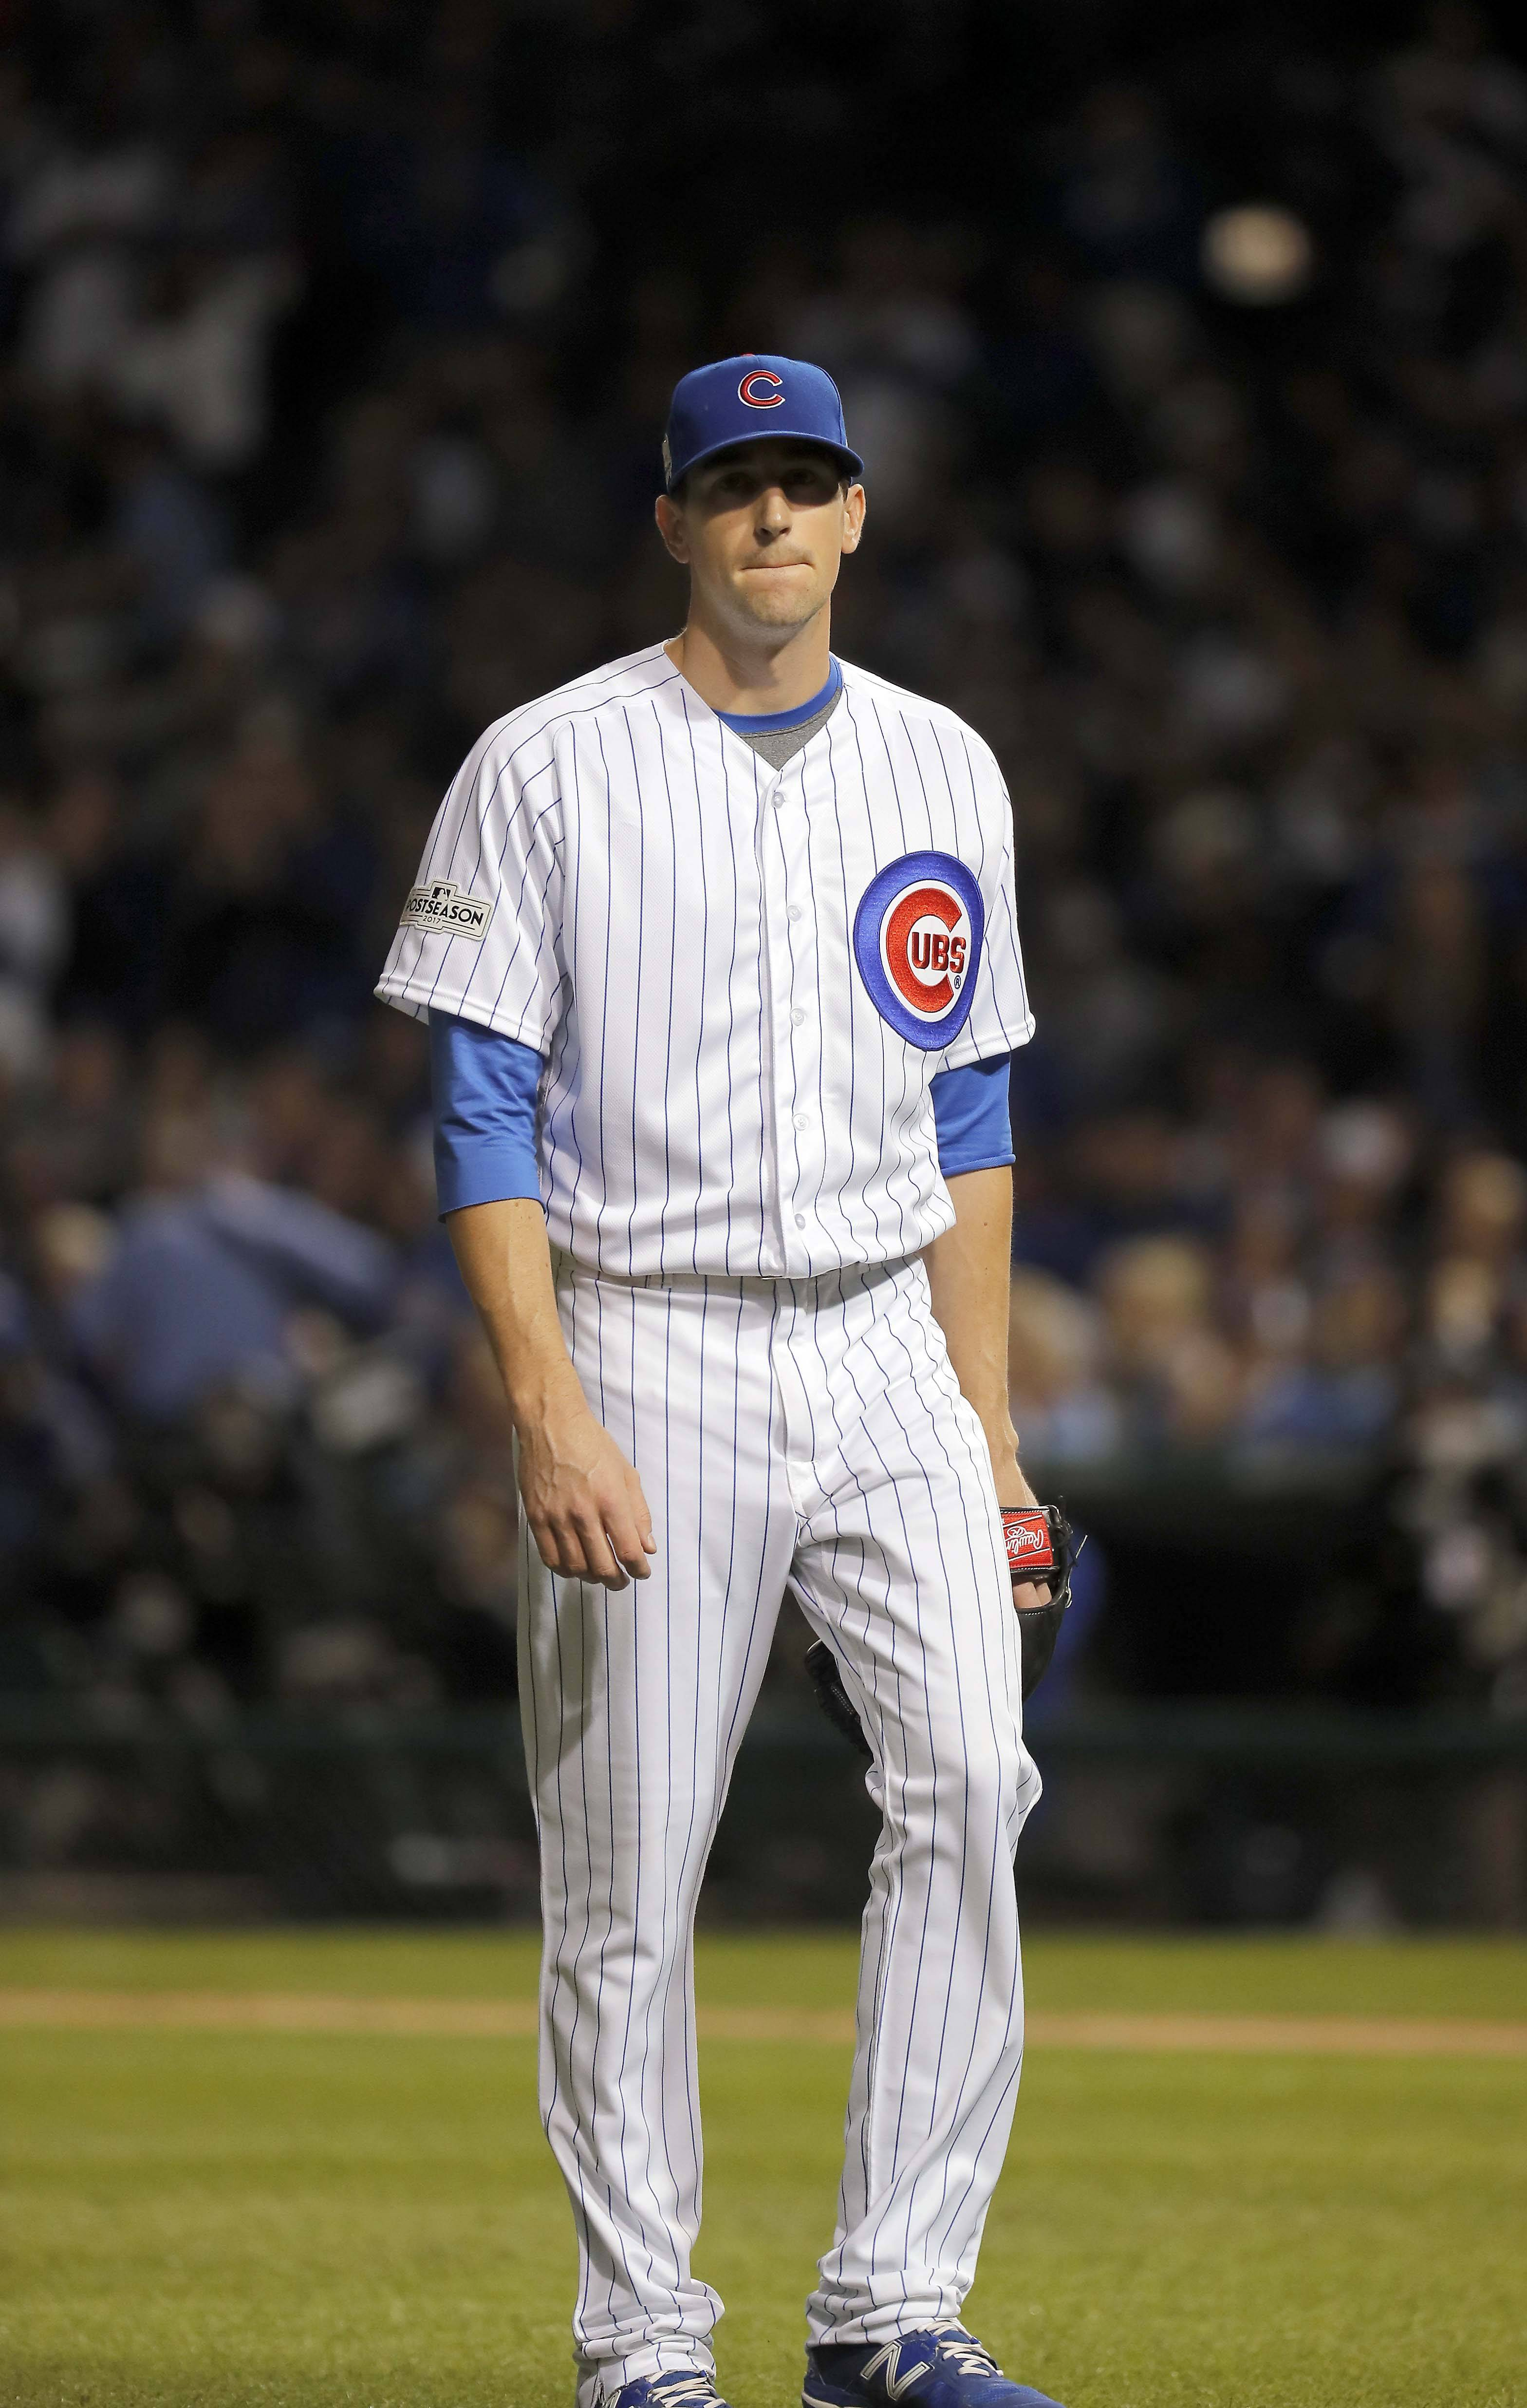 Cubs pitcher Kyle Hendricks gets a $7.4 million deal for the coming season.